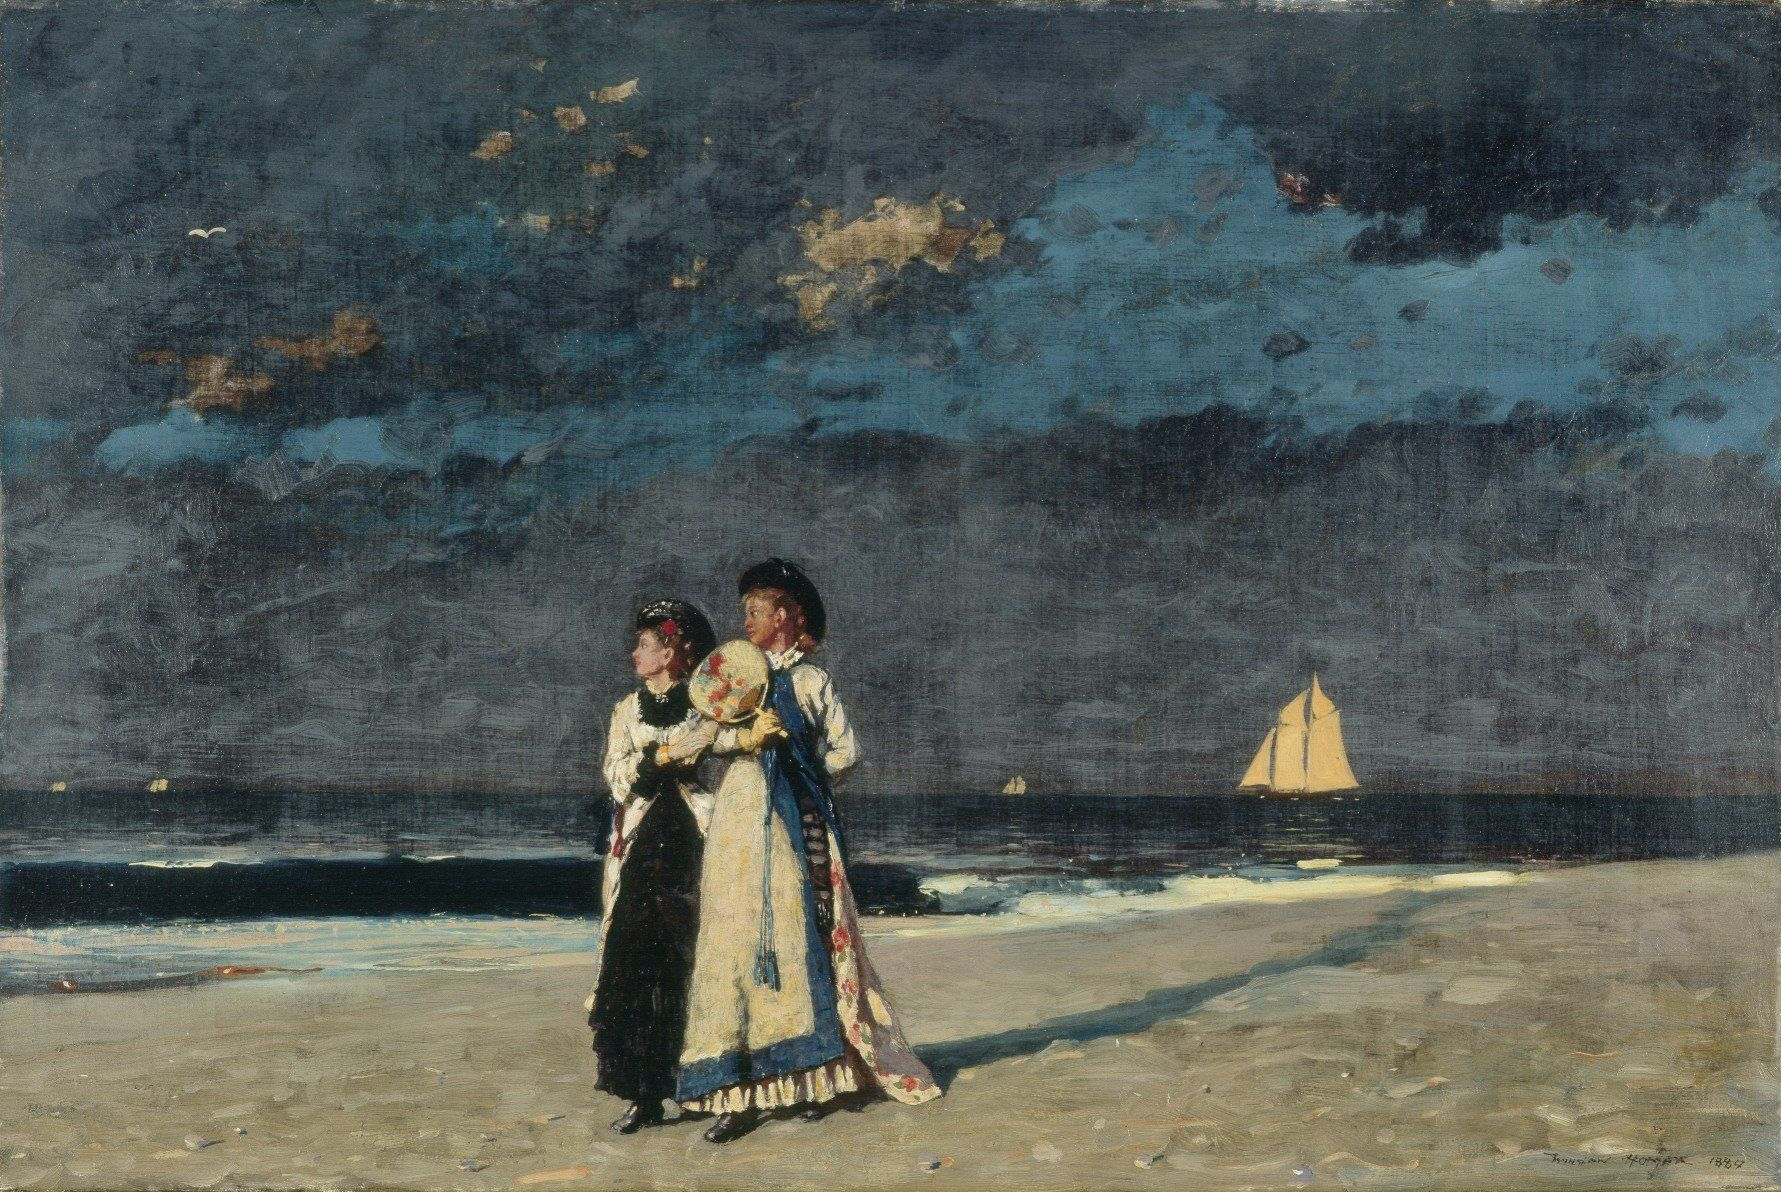 """Follow the link to read about Winslow Homer's letter to George Walter Vincent Smith, the founder of our oldest museum, about this painting """"Promenade on the Beach""""."""